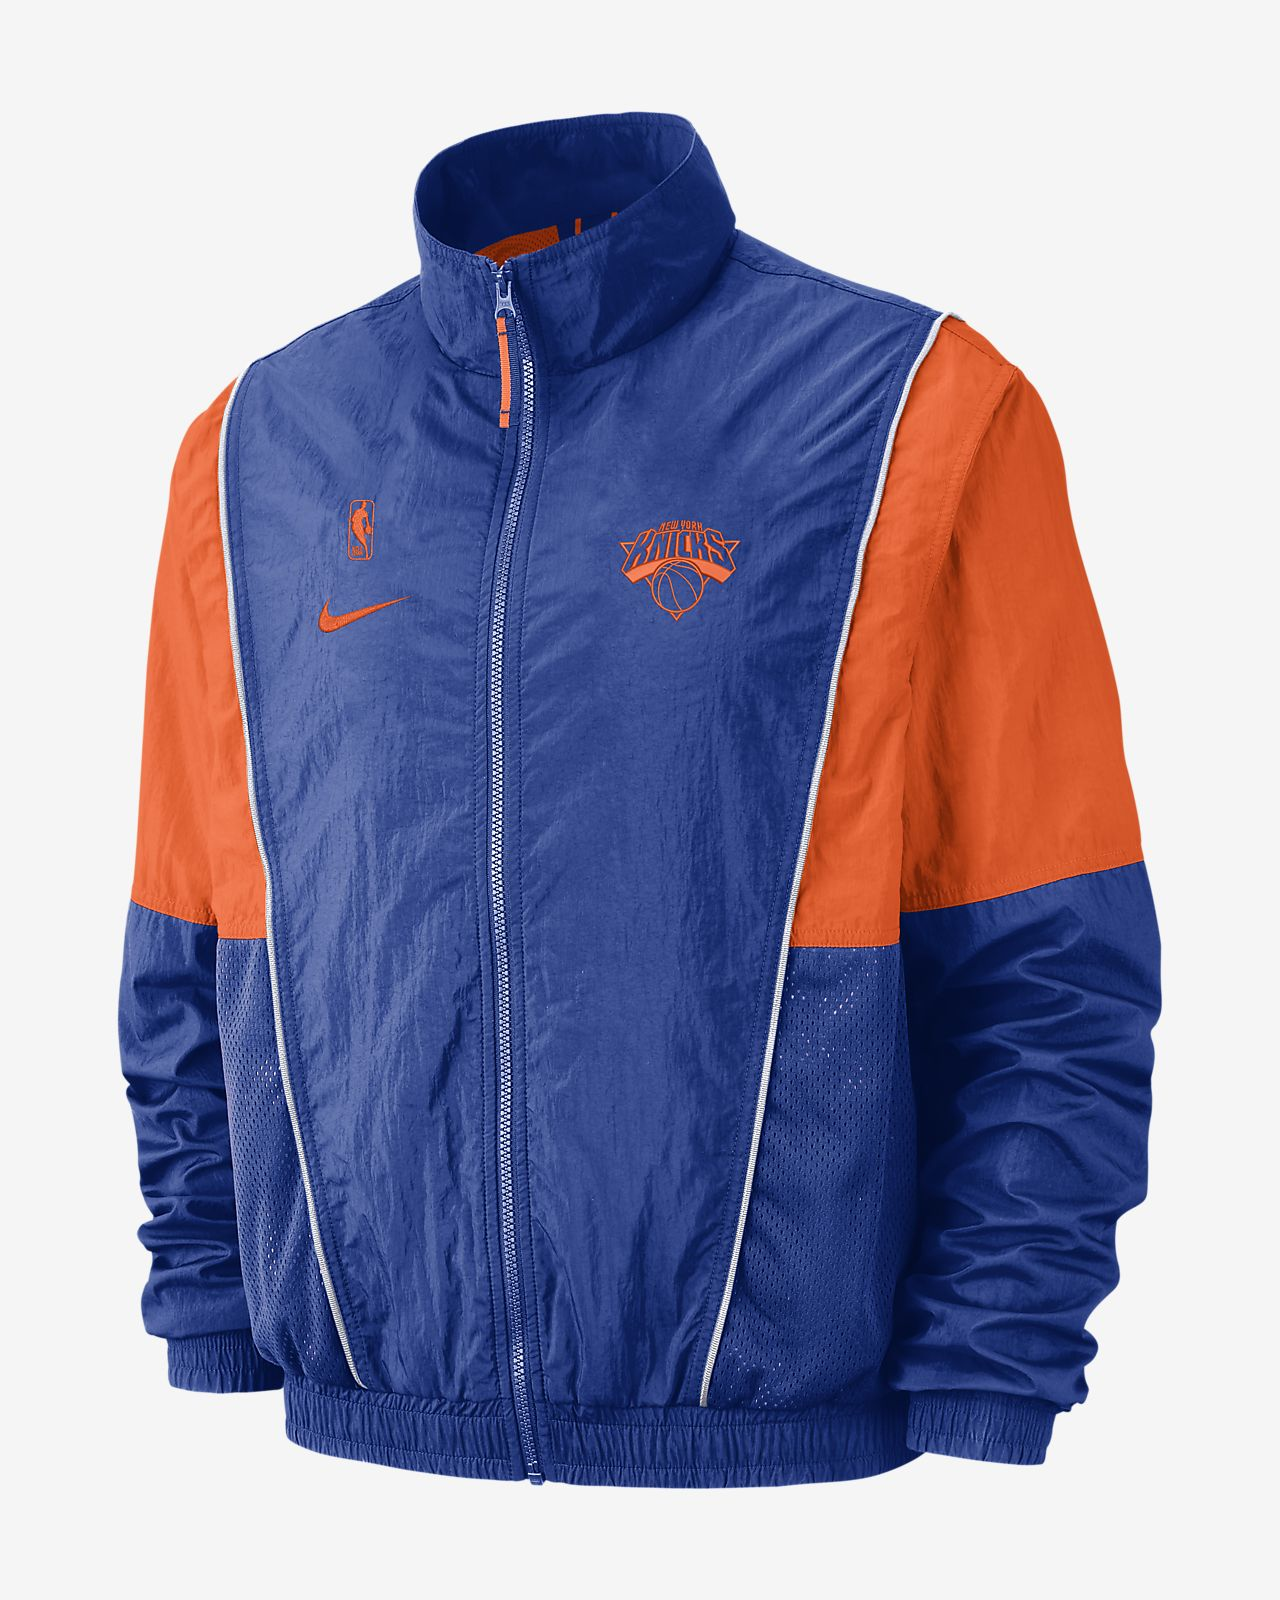 newest df983 c0041 New York Knicks Nike Men's NBA Tracksuit Jacket